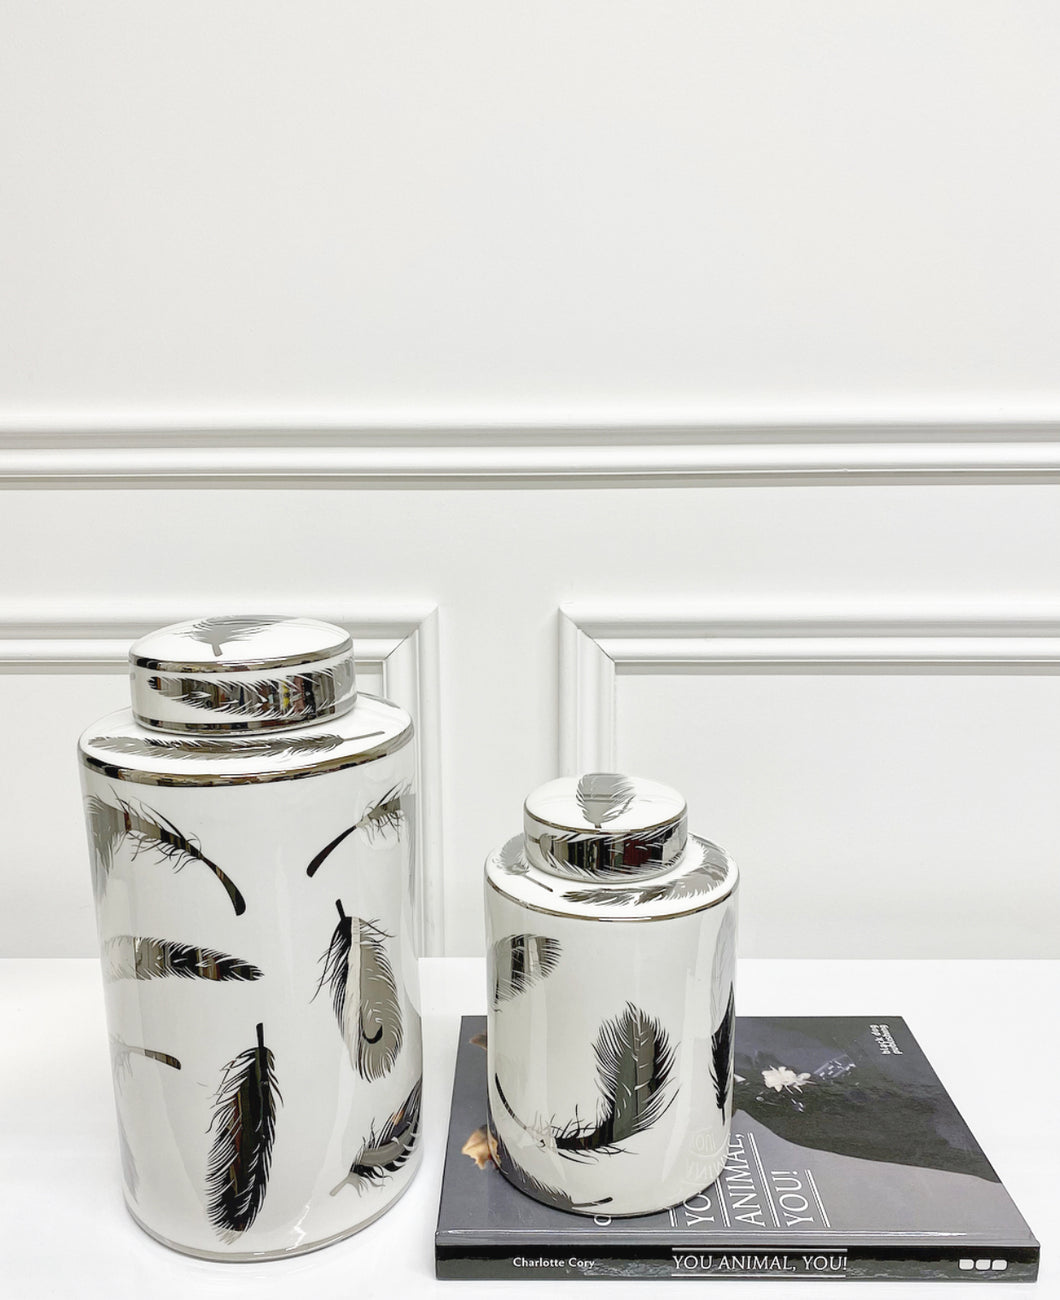 Penna Silver Feather Ceramic Jar (Available in Two Sizes)